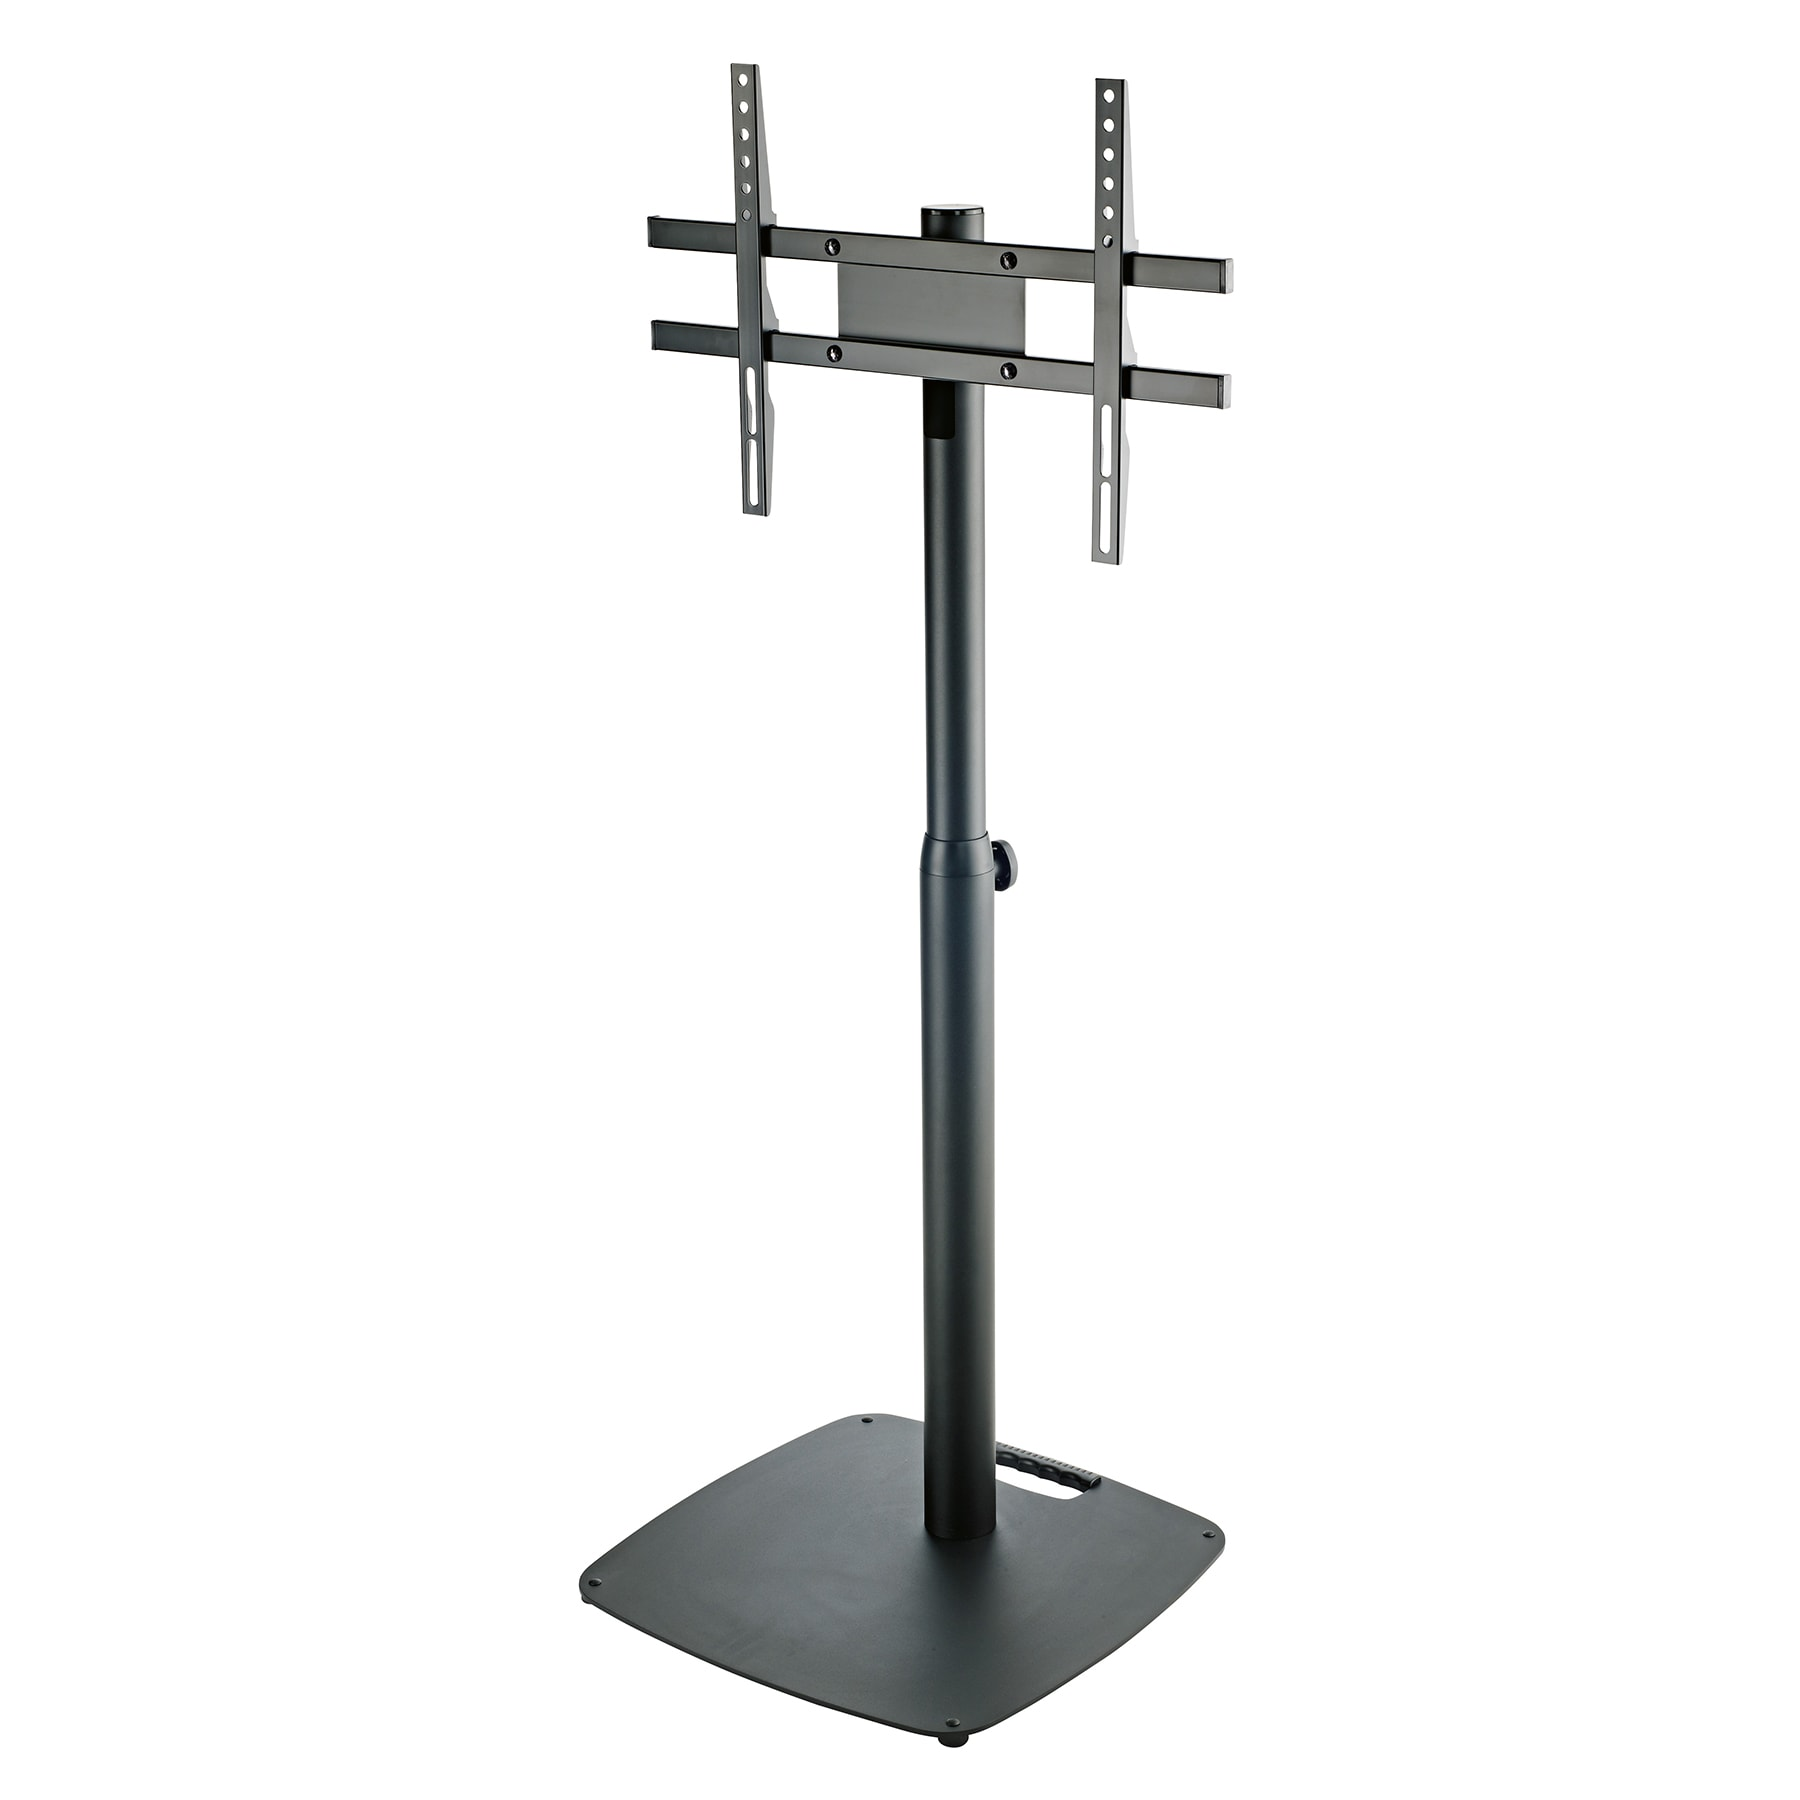 KM26782 - Screen/monitor stand